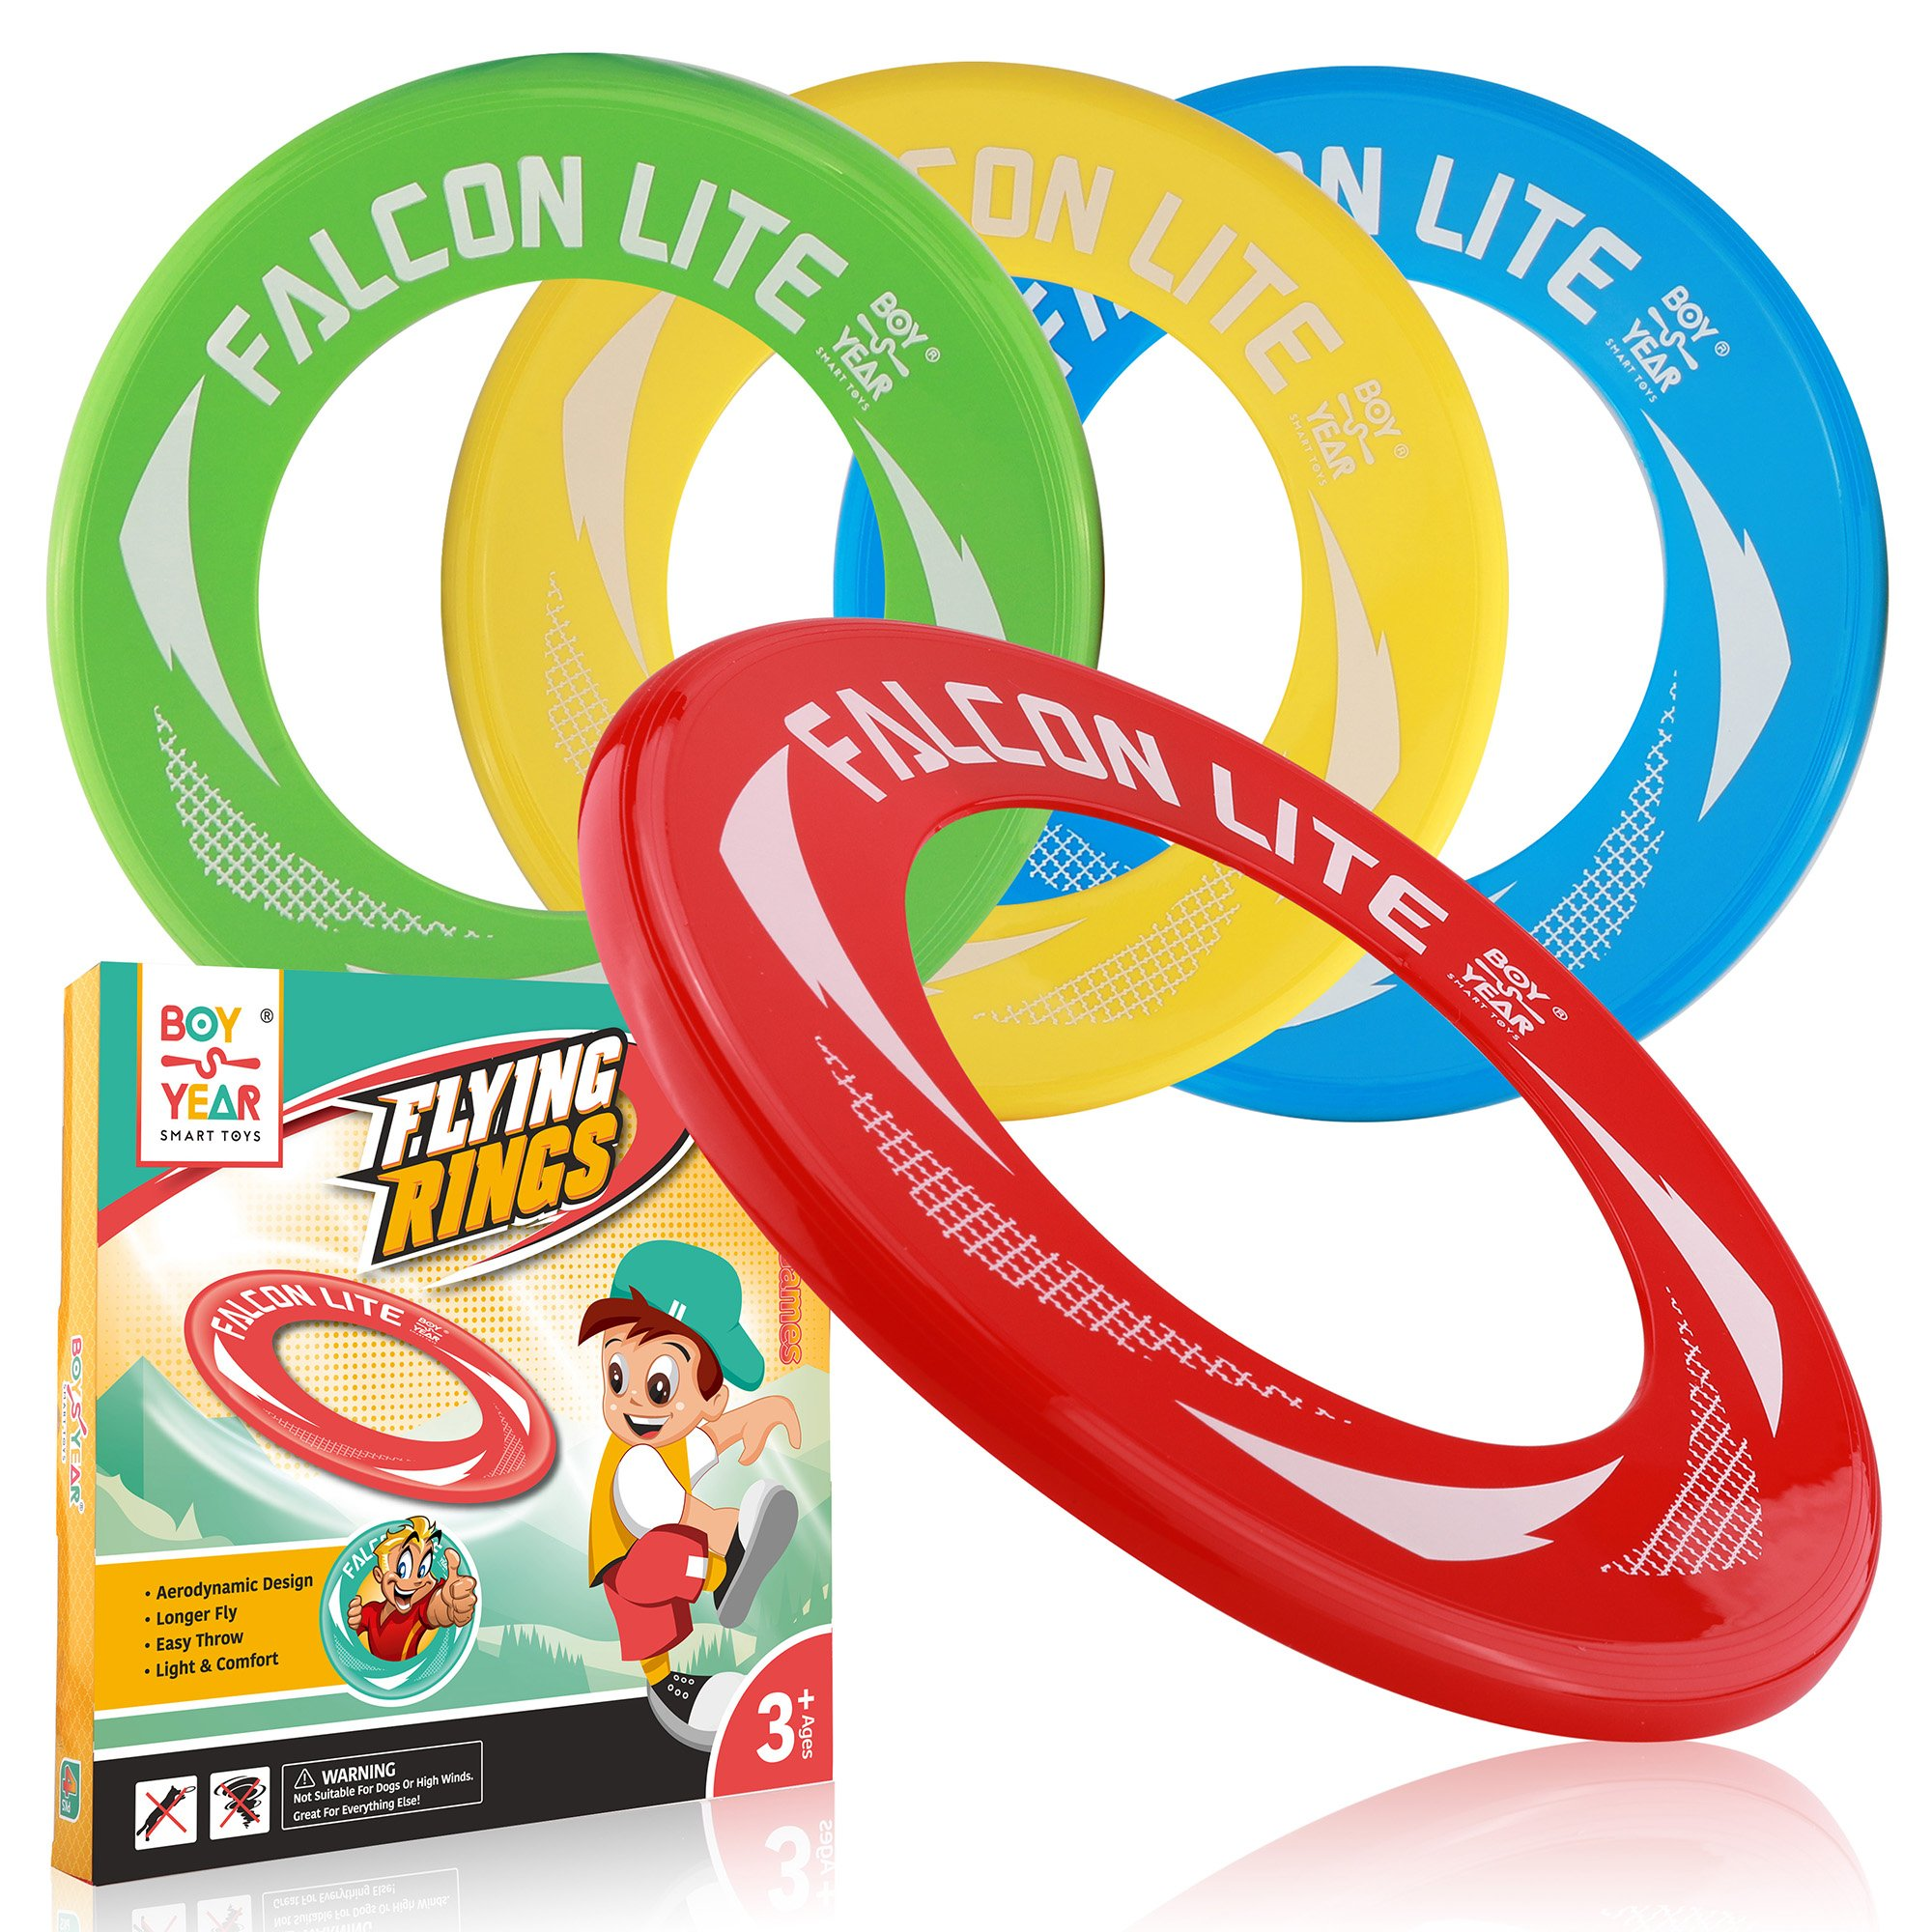 4-Pack Falcon Lite Flying Disc Rings - 2018 Hot Outdoors Game, Beach Games, Water - Summer Toys For Kids - Outdoor Gifts & Best Gift For Teen Boys, Girls & Adults